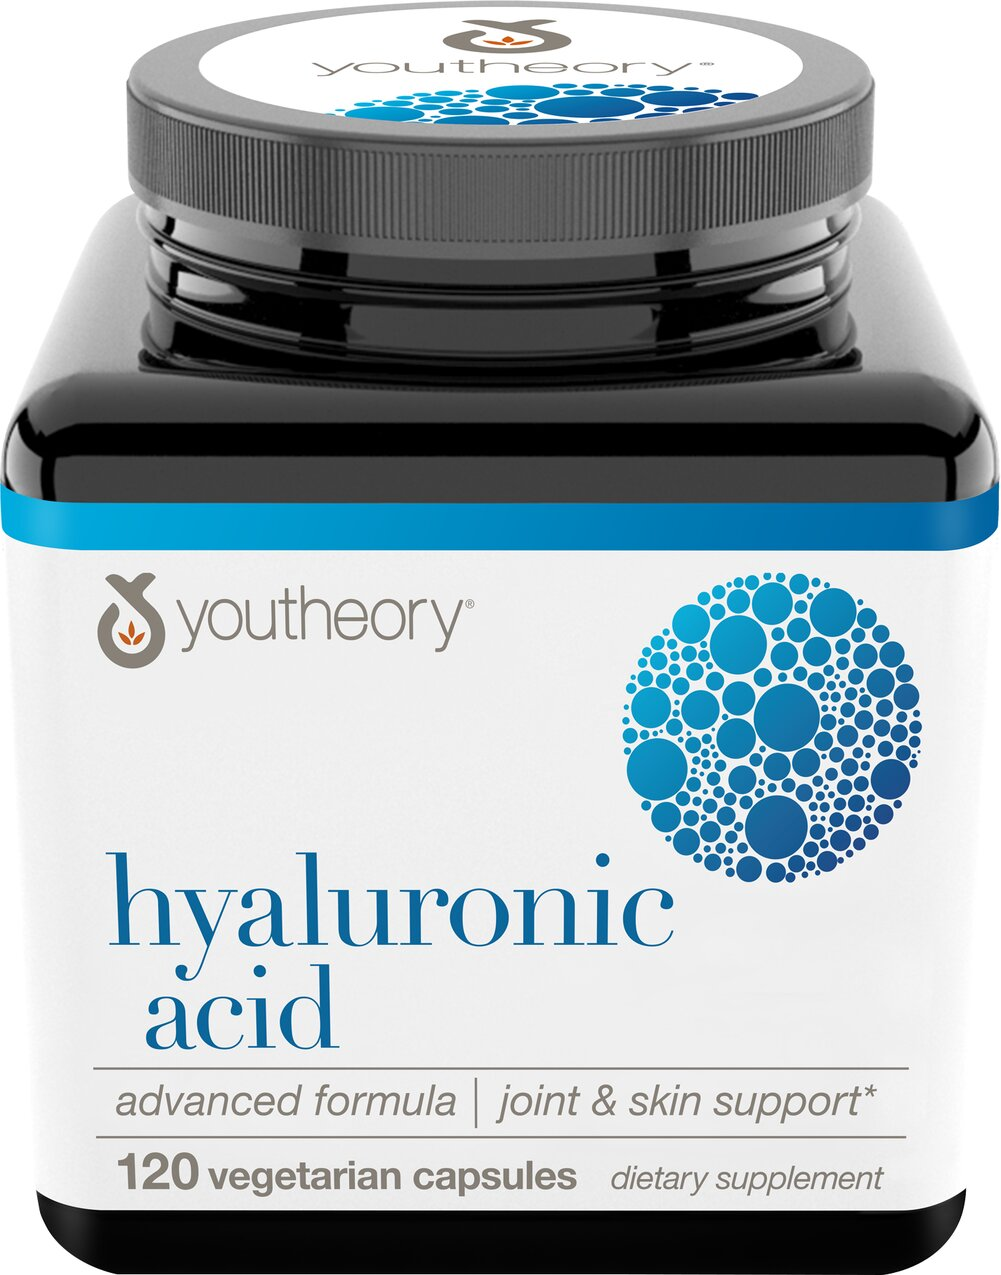 Hyaluronic Acid Advanced Formula Thumbnail Alternate Bottle View